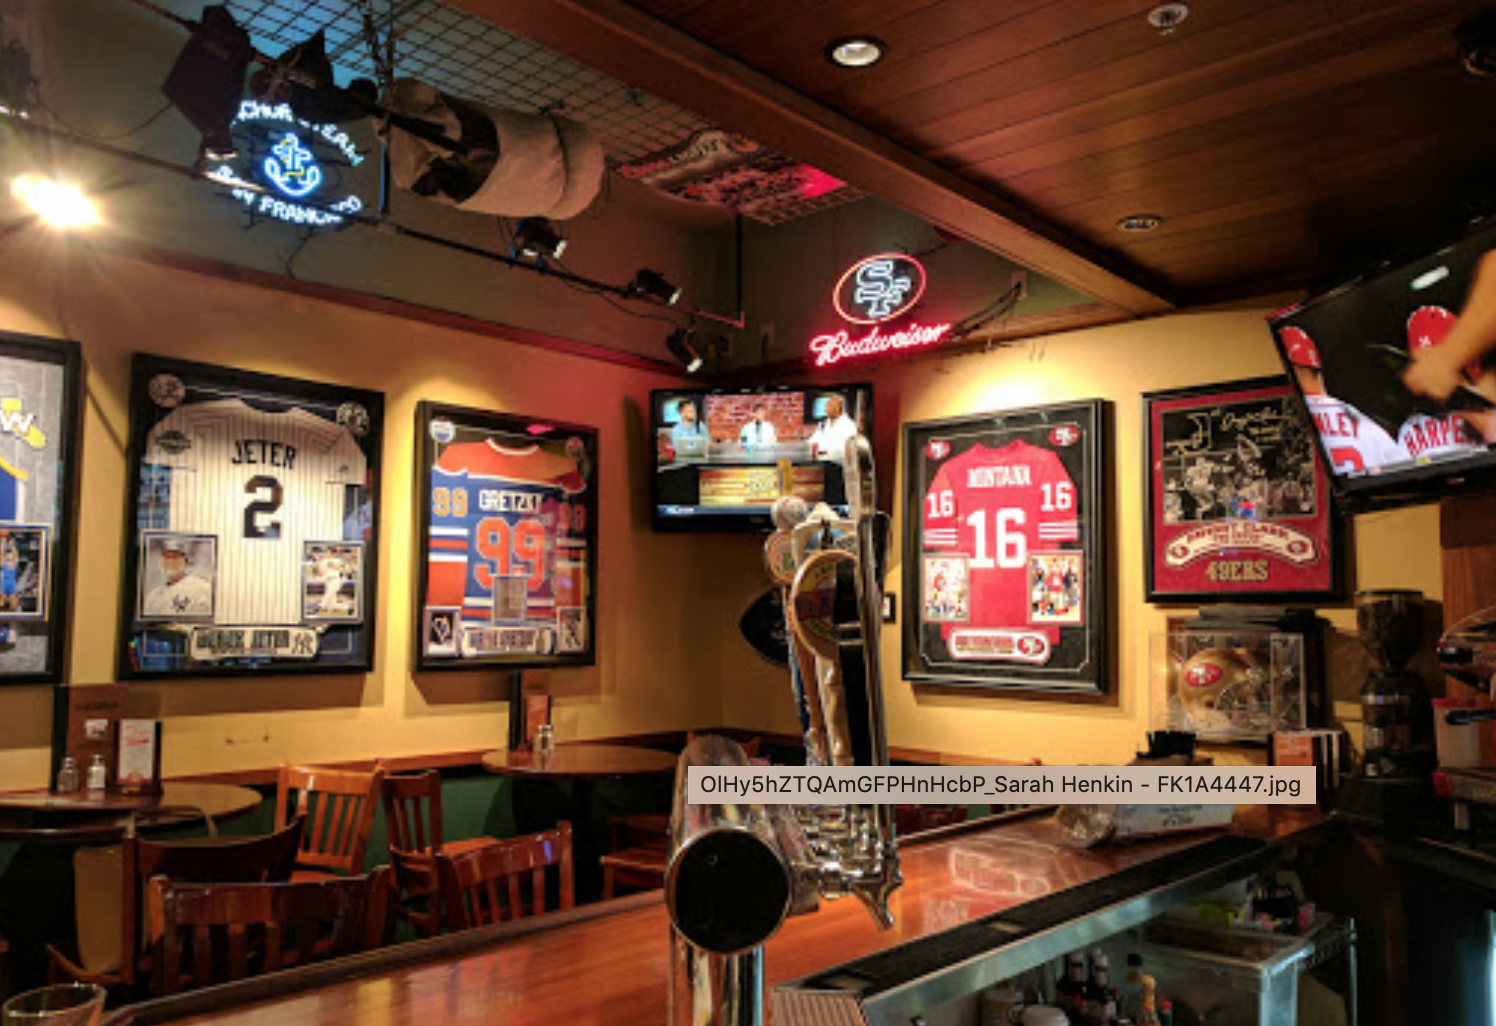 Photo #4 The Sports Grill at Players Arcade and Sports Grill